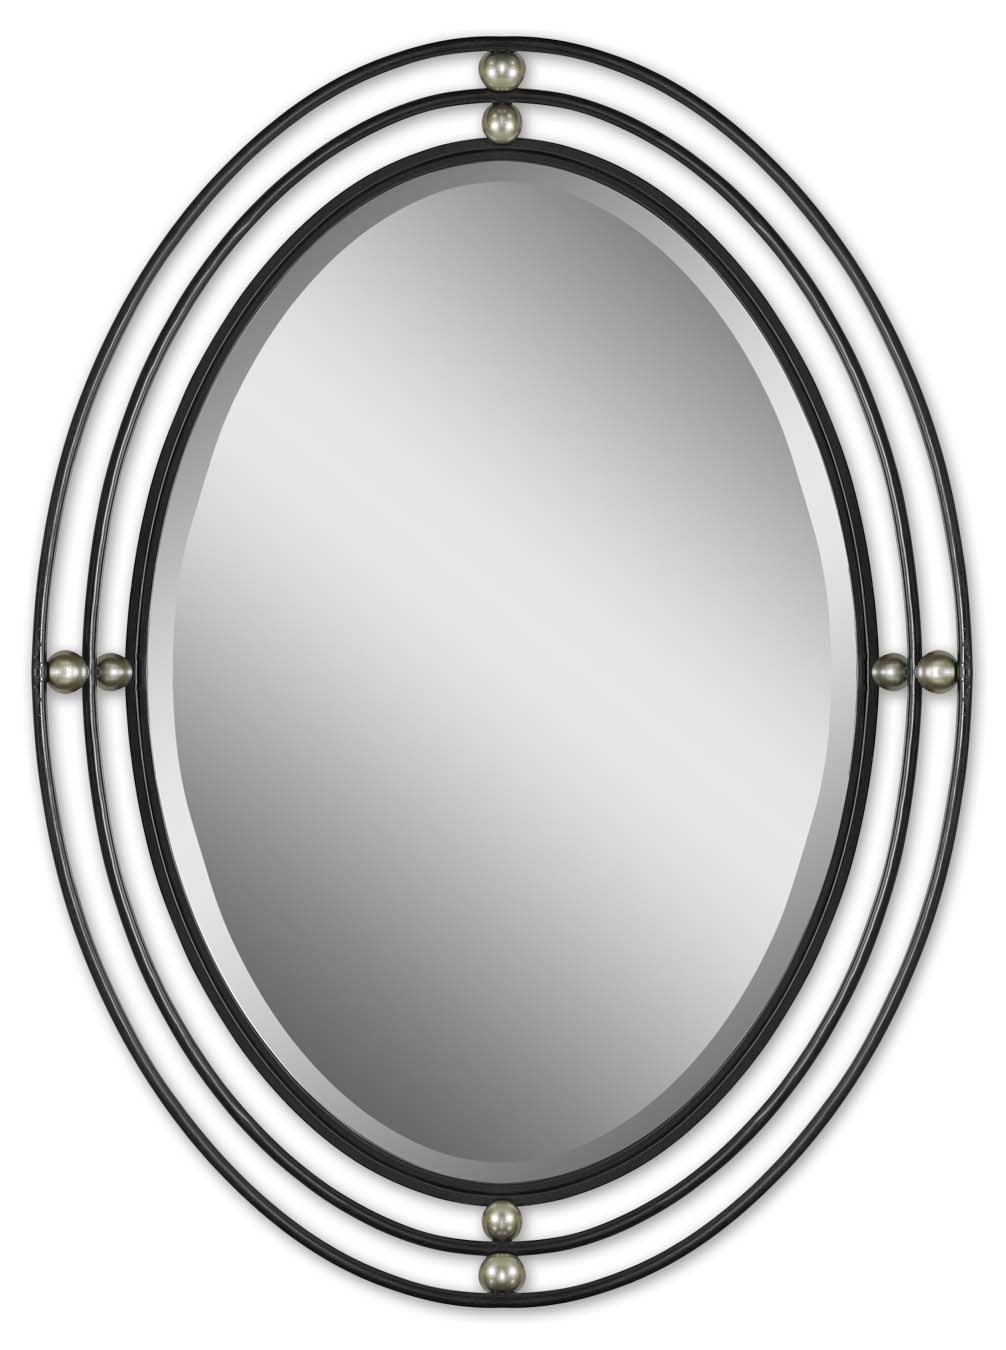 New Traditions Collection Mirror Lady Welcome To The Webs With Regard To Black Oval Mirror (Image 7 of 15)